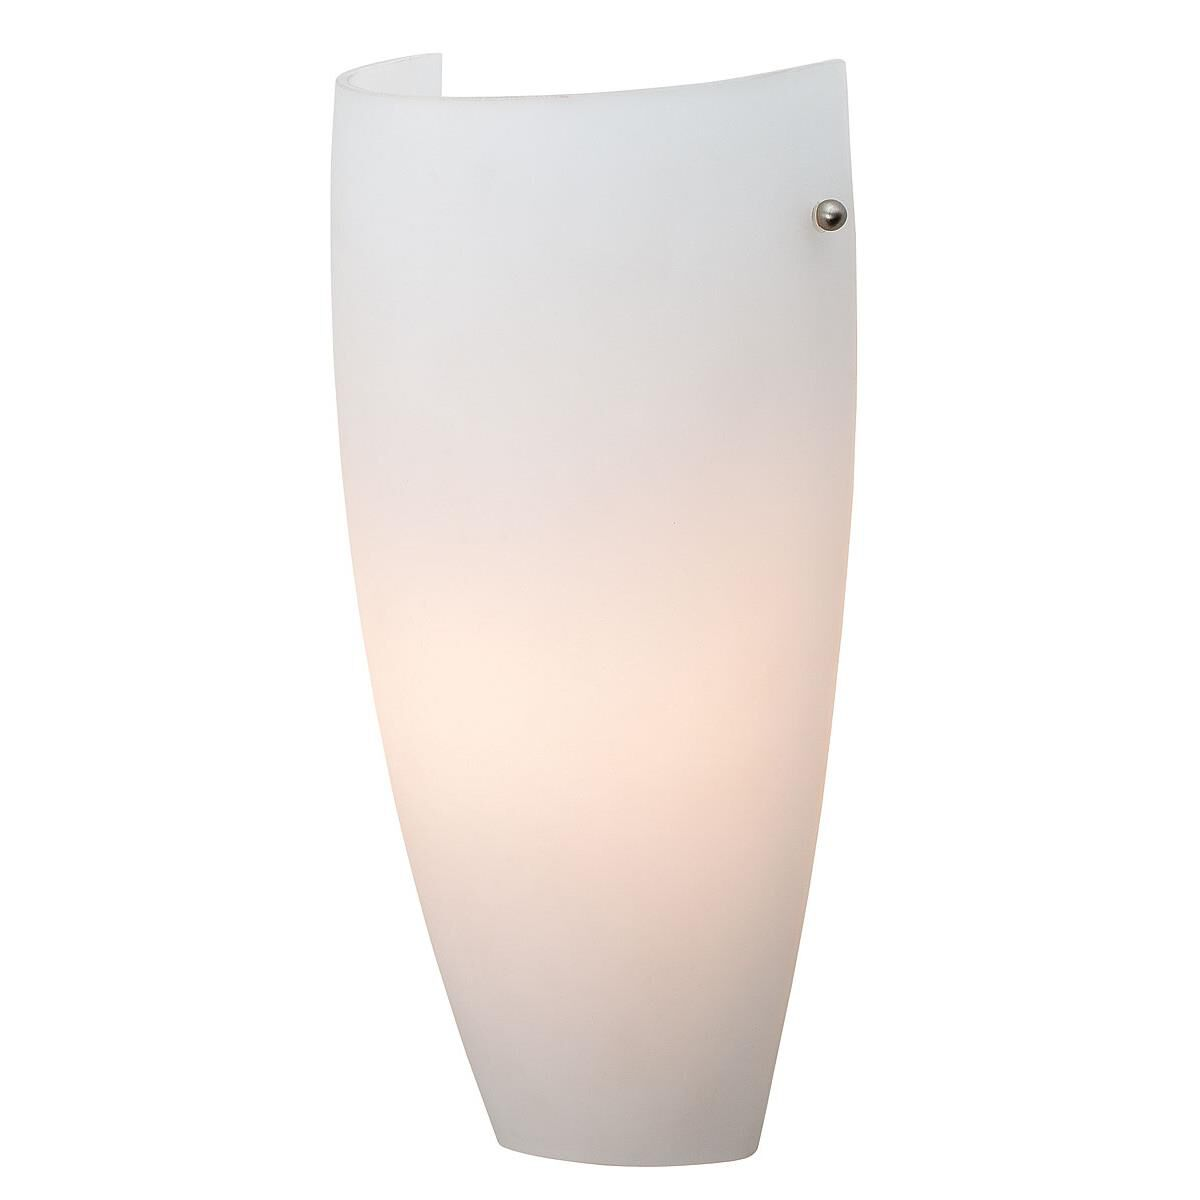 Access Lighting Daphne 11 Inch Wall Sconce Daphne 20415 ALB Modern Contemporary